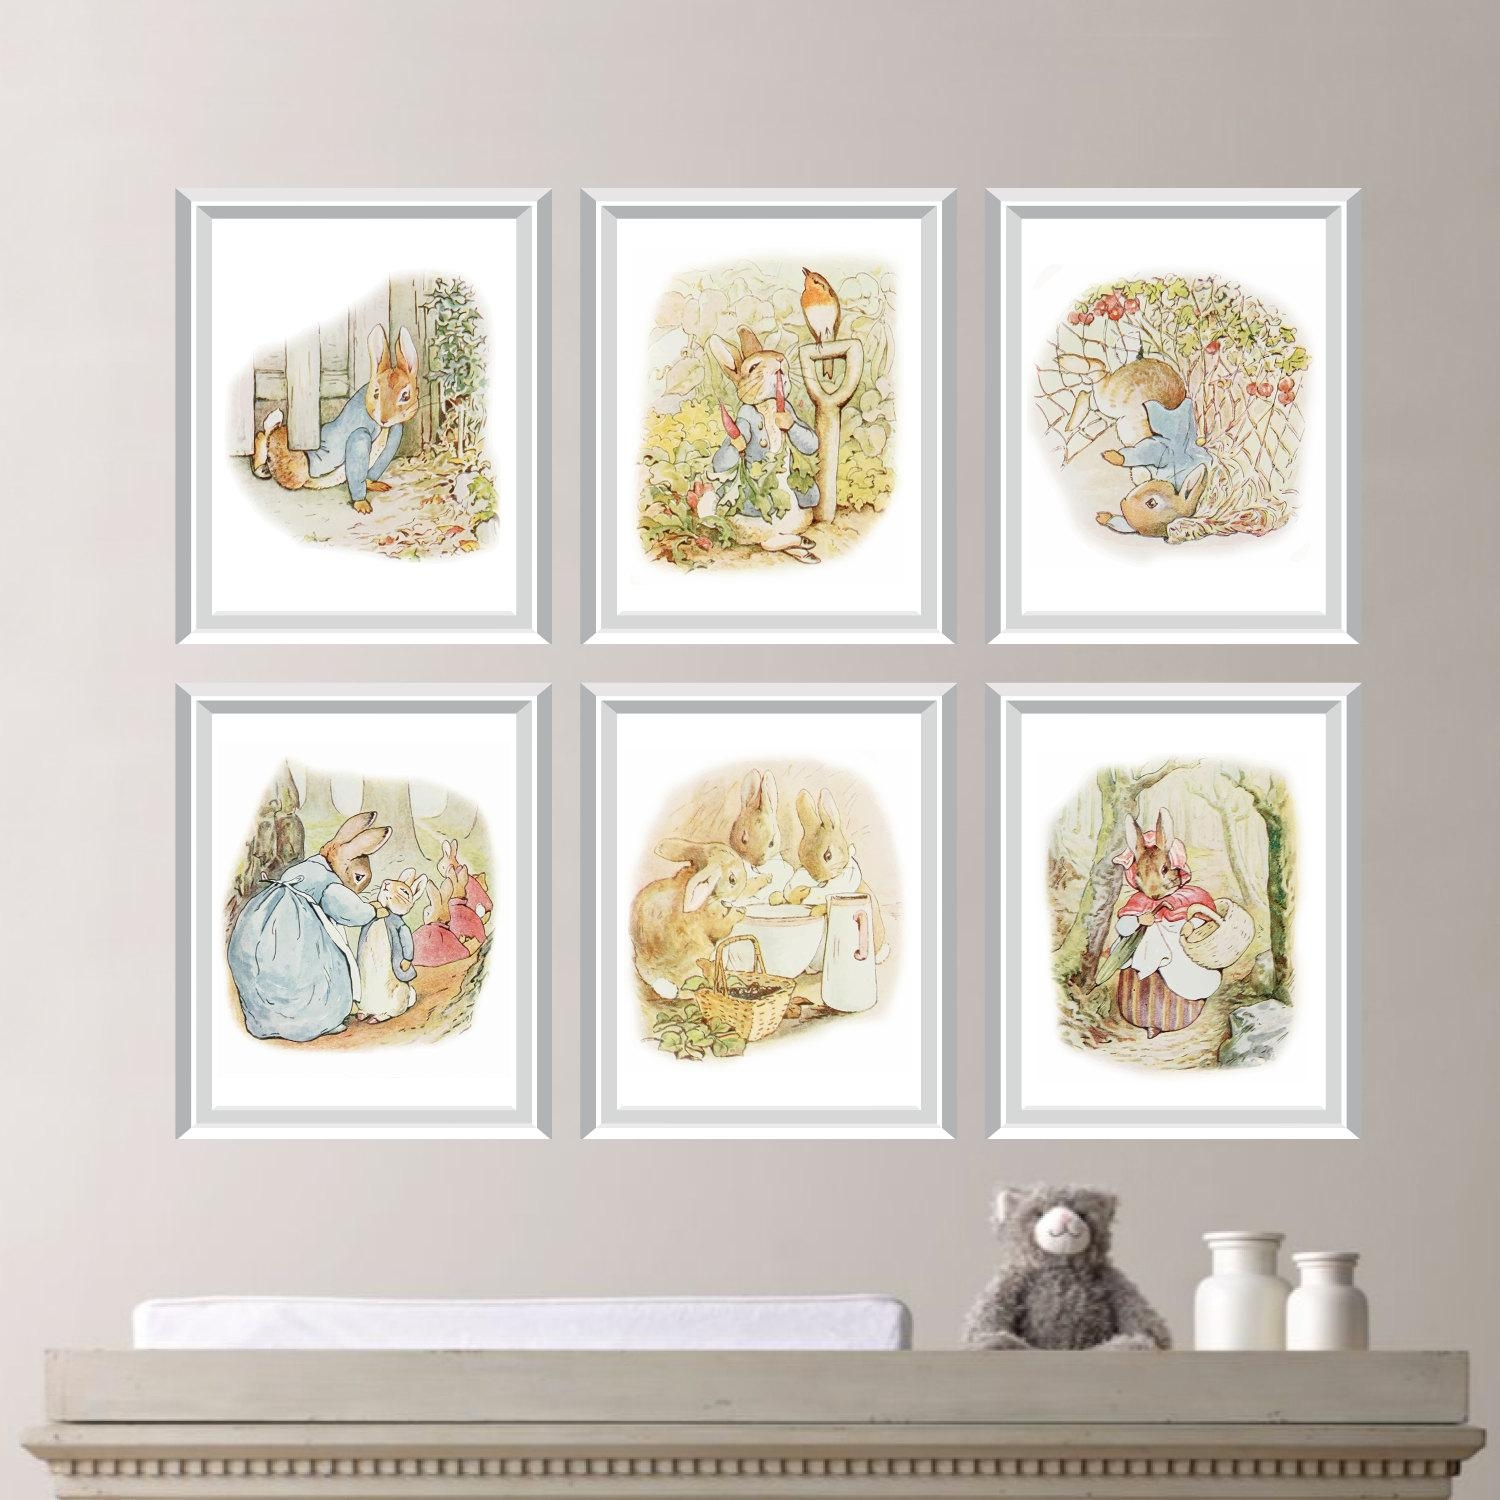 Peter Rabbit Nursery Decor. Baby Nursery Print Art (Image 6 of 20)